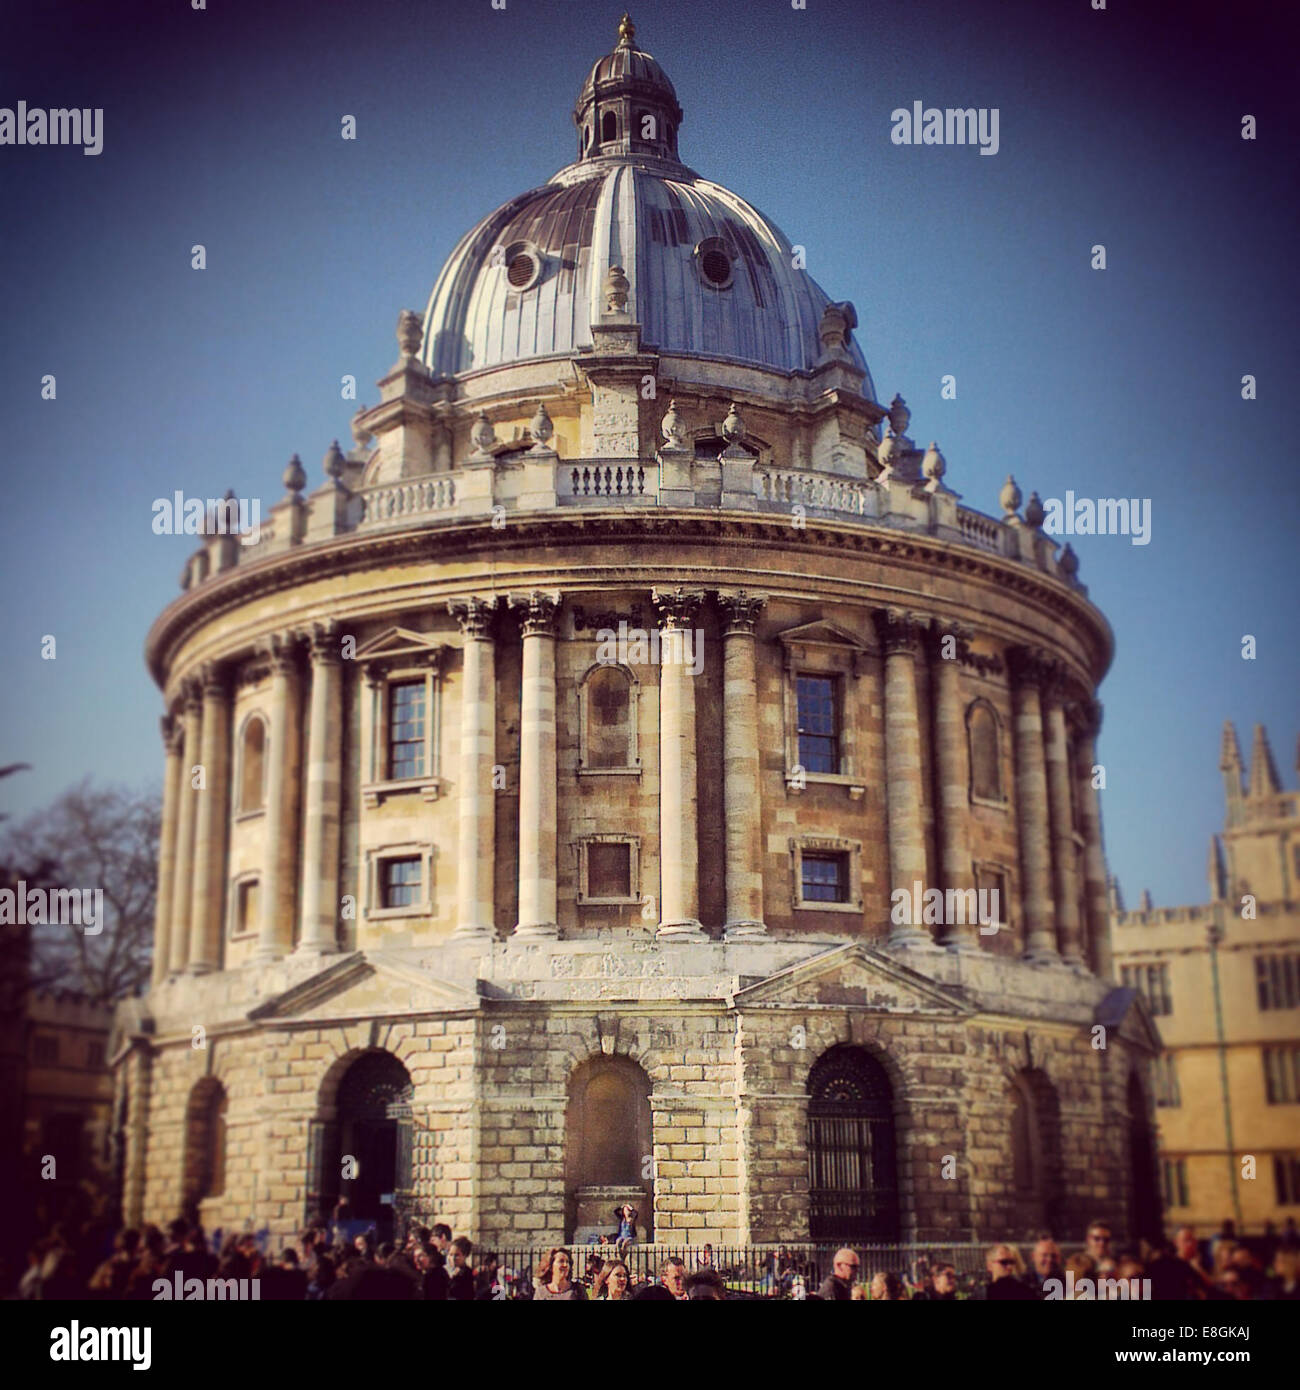 Oxford, UK The Radcliffe Camera In Oxford - Stock Image